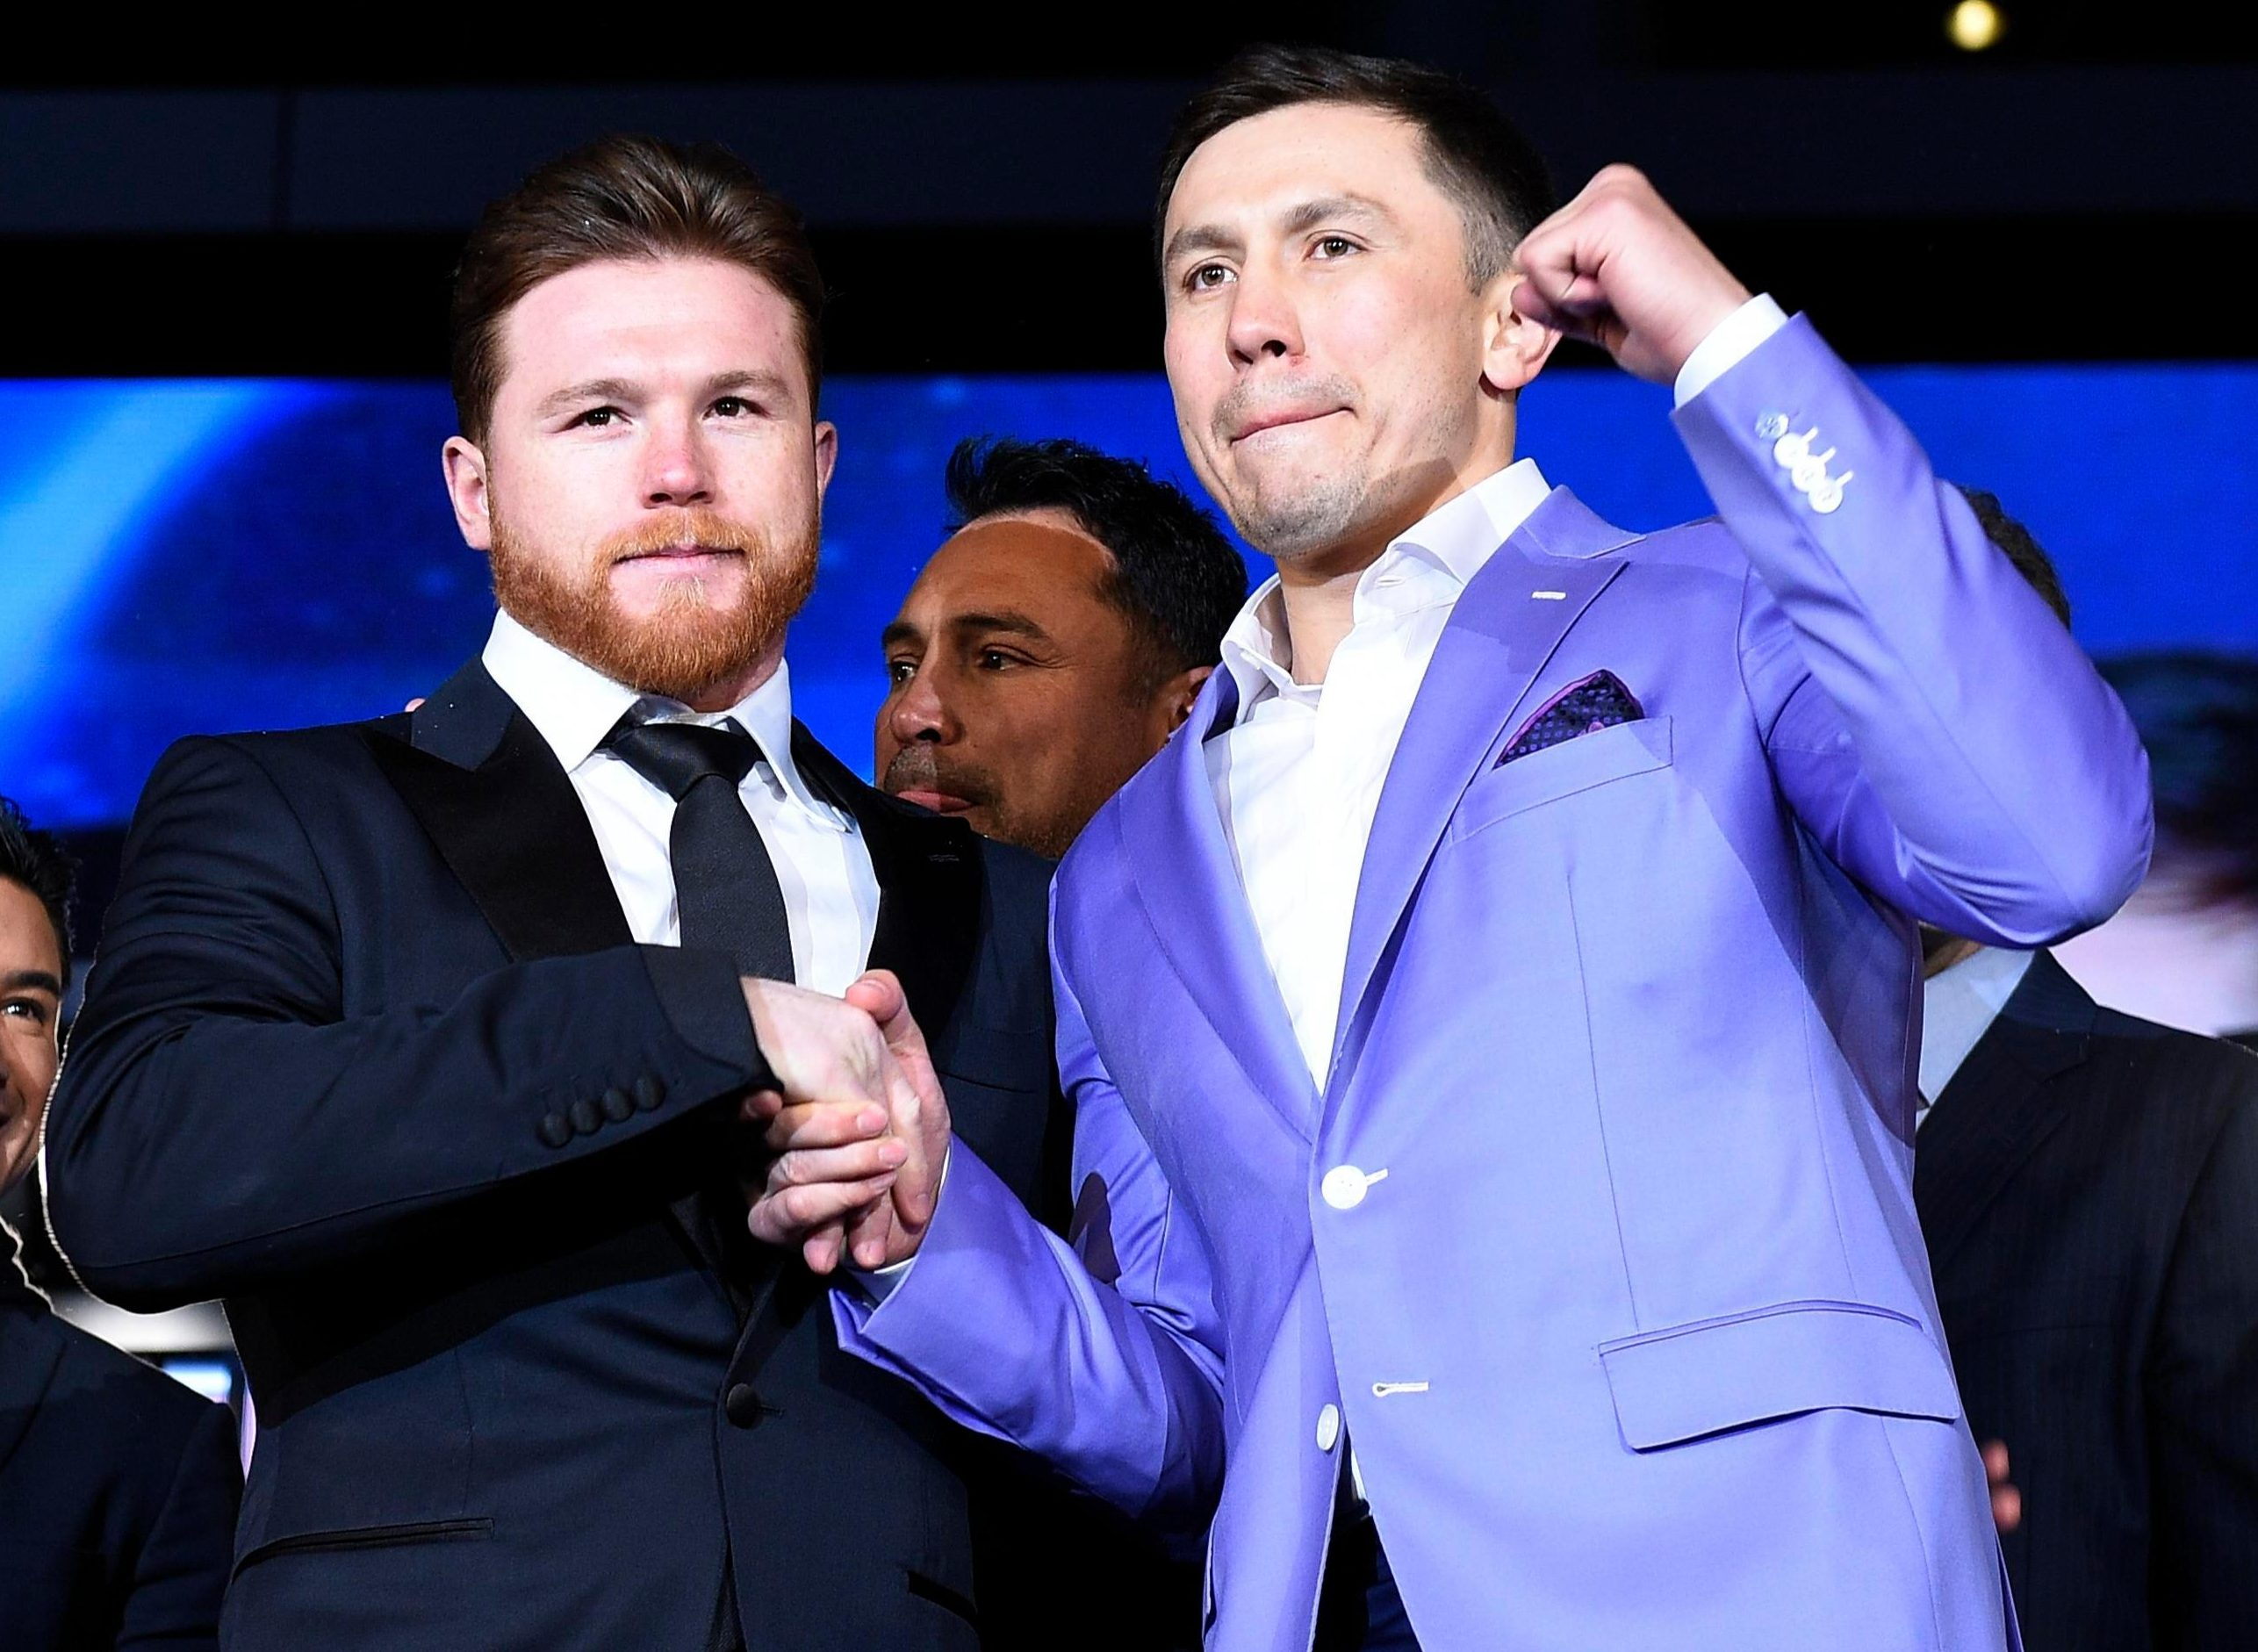 Canelo Alvarez and Gennady Golovkin will fight again in the rematch everyone wants to see on September 15